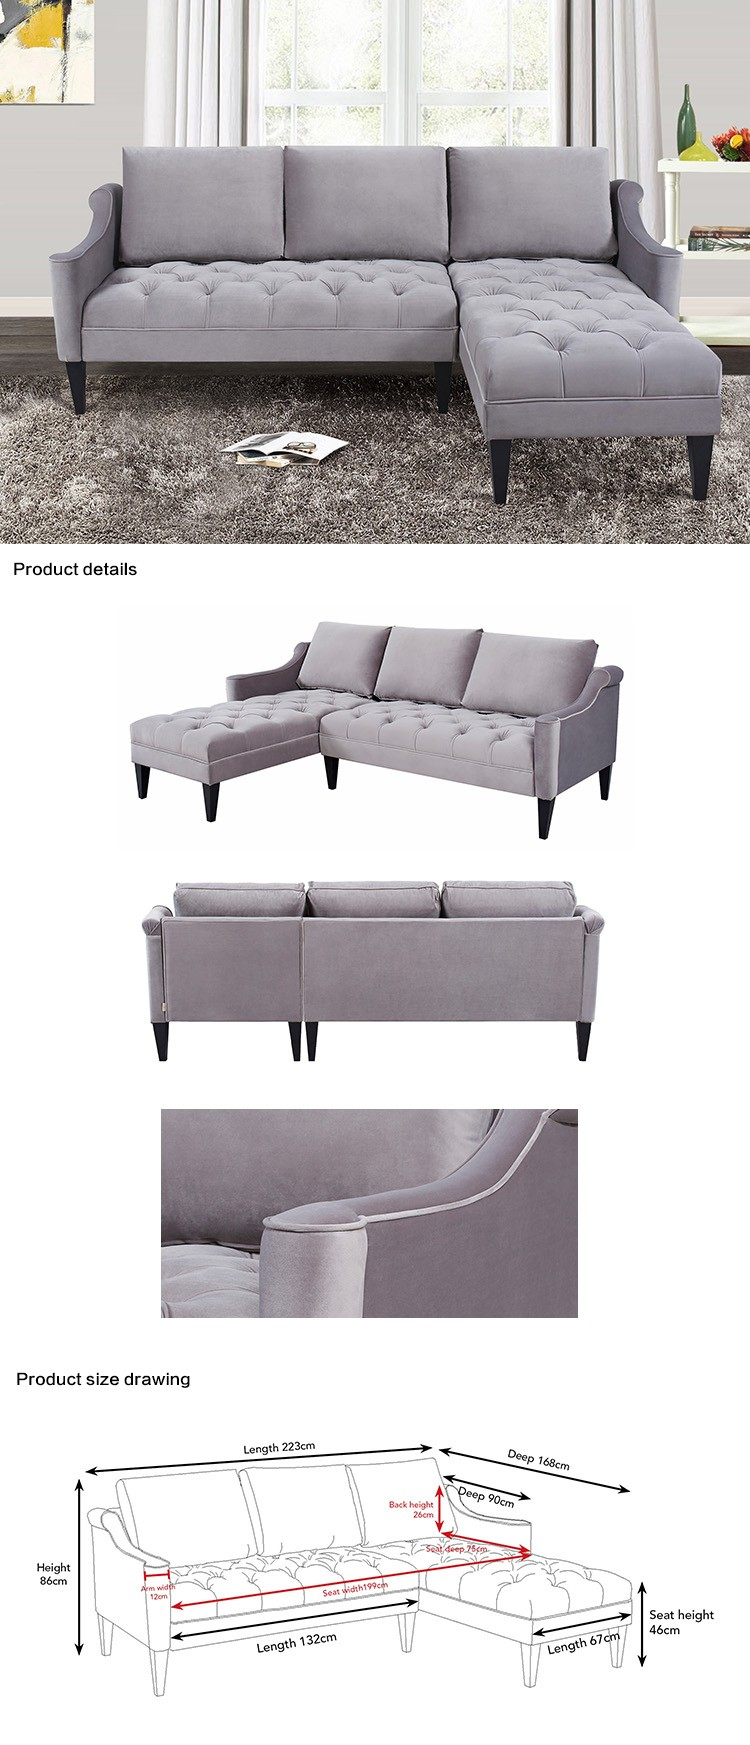 China Suppliers Wholesale New Product Sofa Set Velvet Polyester Fabric  Couch Furniture